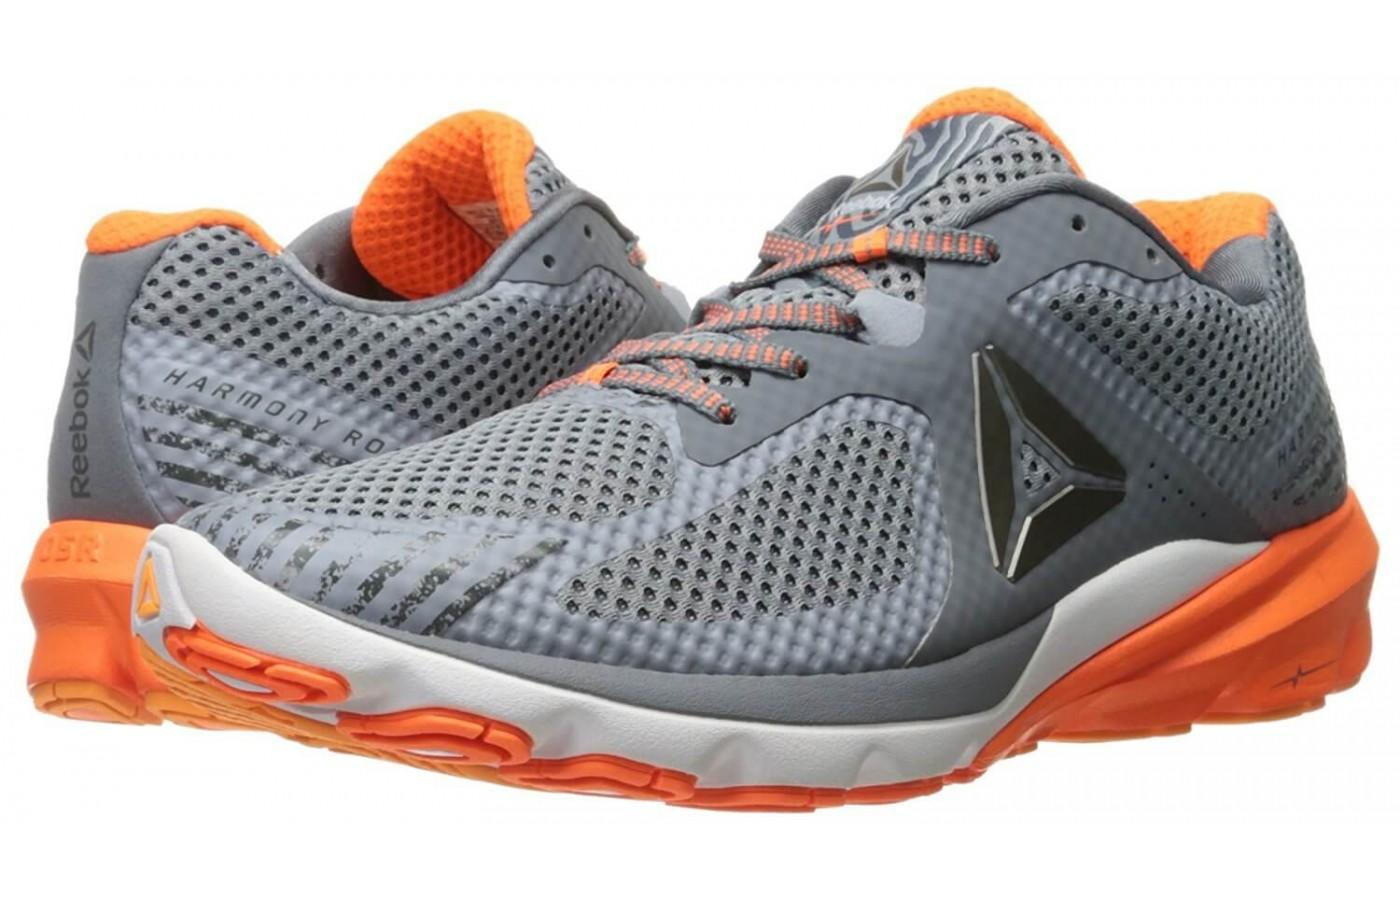 the Reebok Harmony Road is a great overall running shoe